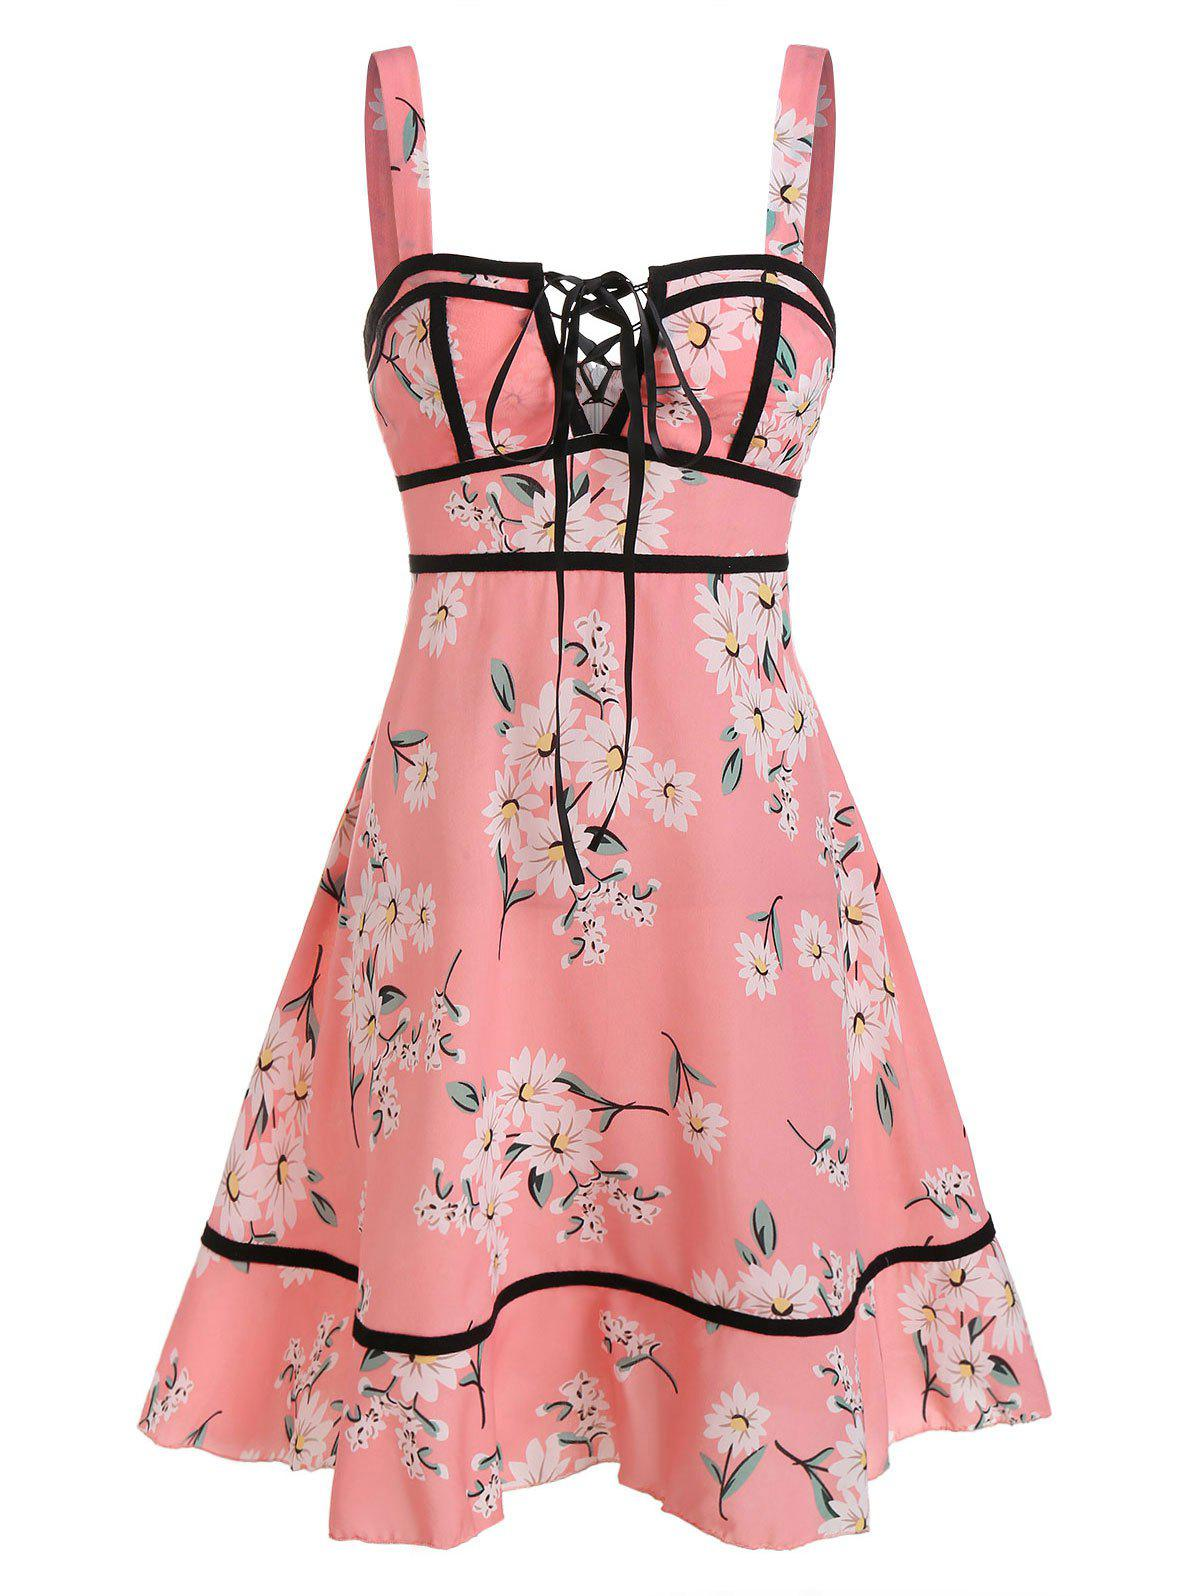 New Sleeveless Flower Print Lace-up Flare Dress